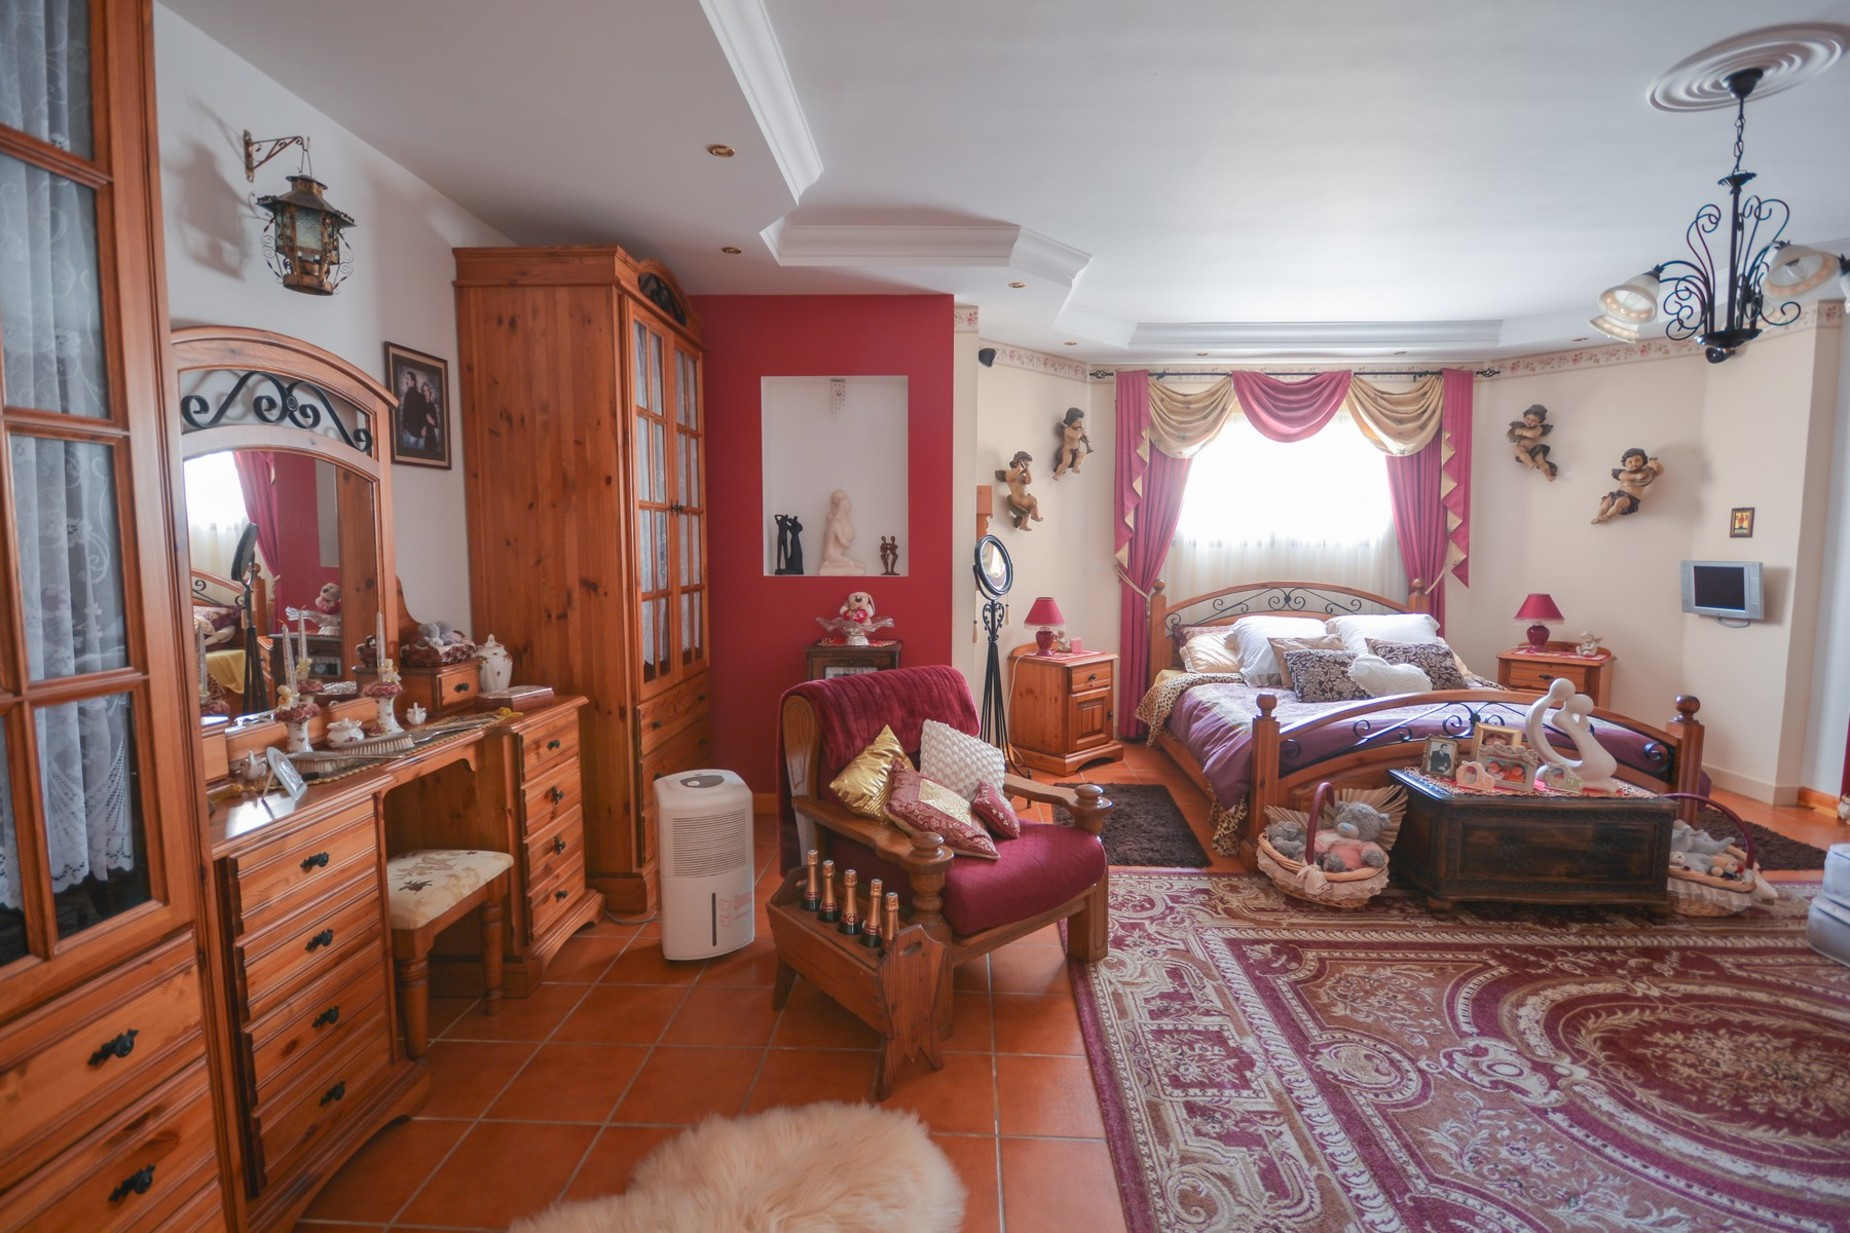 10 bed Villa For Sale in Madliena, Madliena - thumb 15